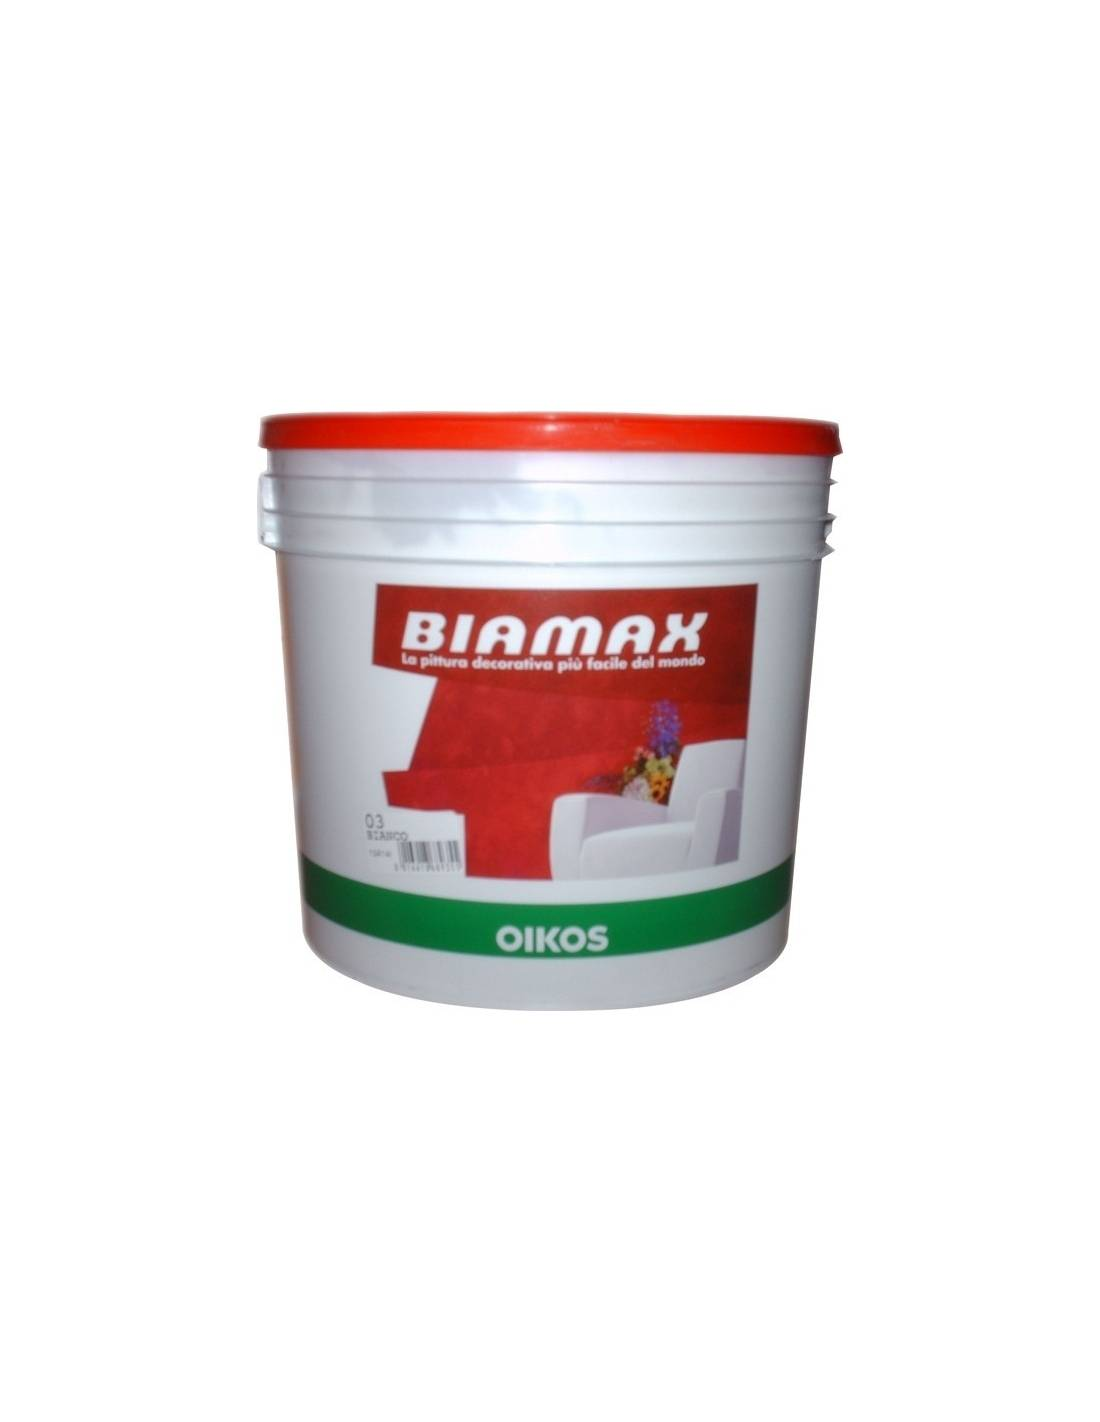 Biamax by oikos acquista online for Biamax oikos